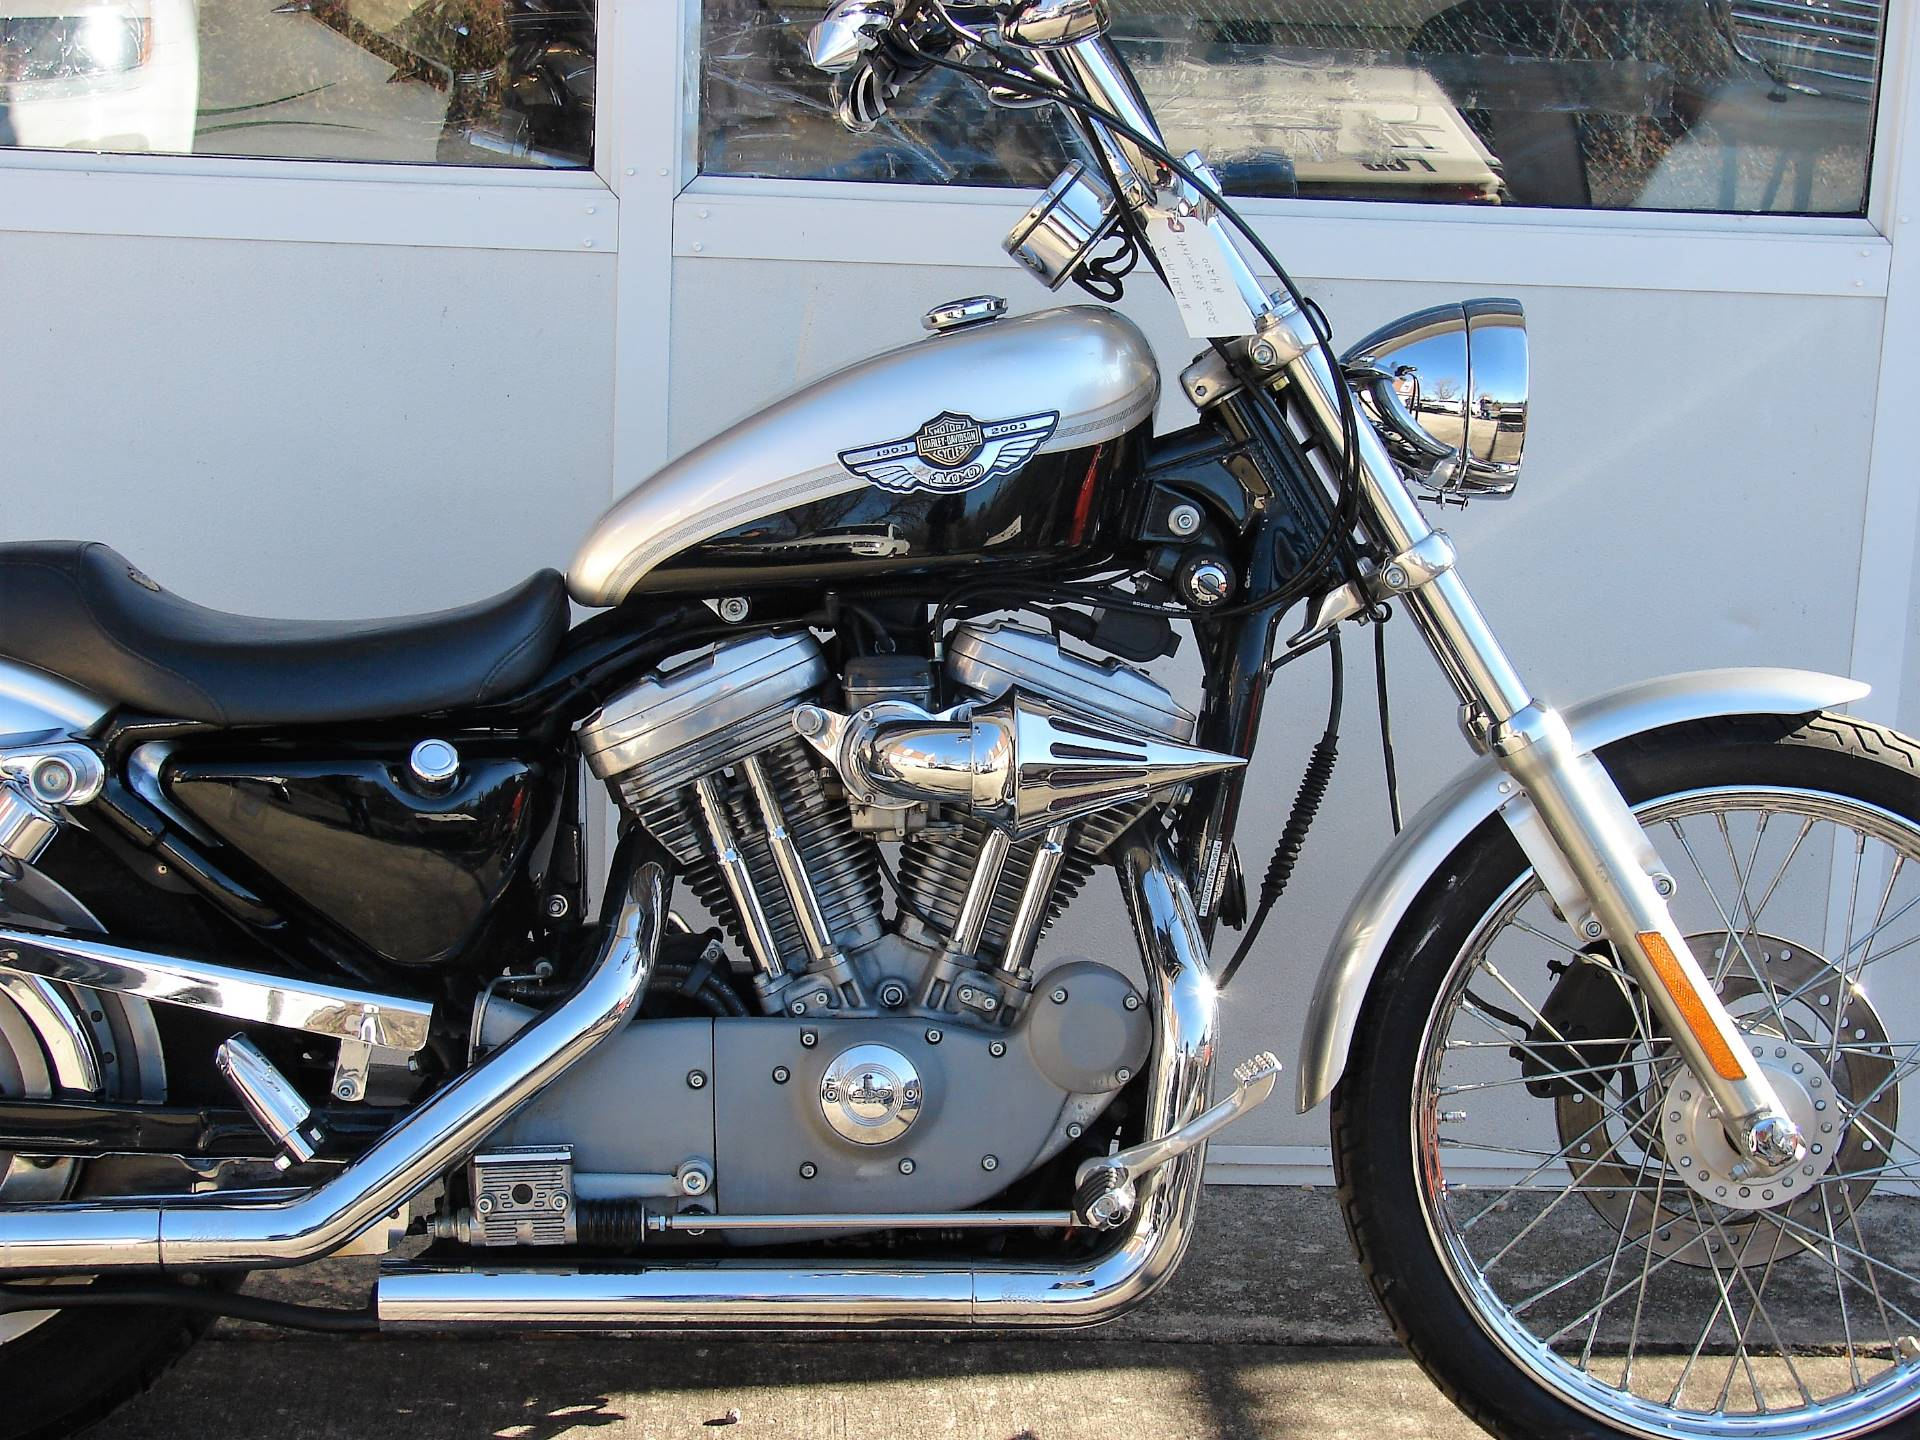 2003 Harley-Davidson XLH 883 Sportster (Anniversary Edition) (Silver & Black) in Williamstown, New Jersey - Photo 2